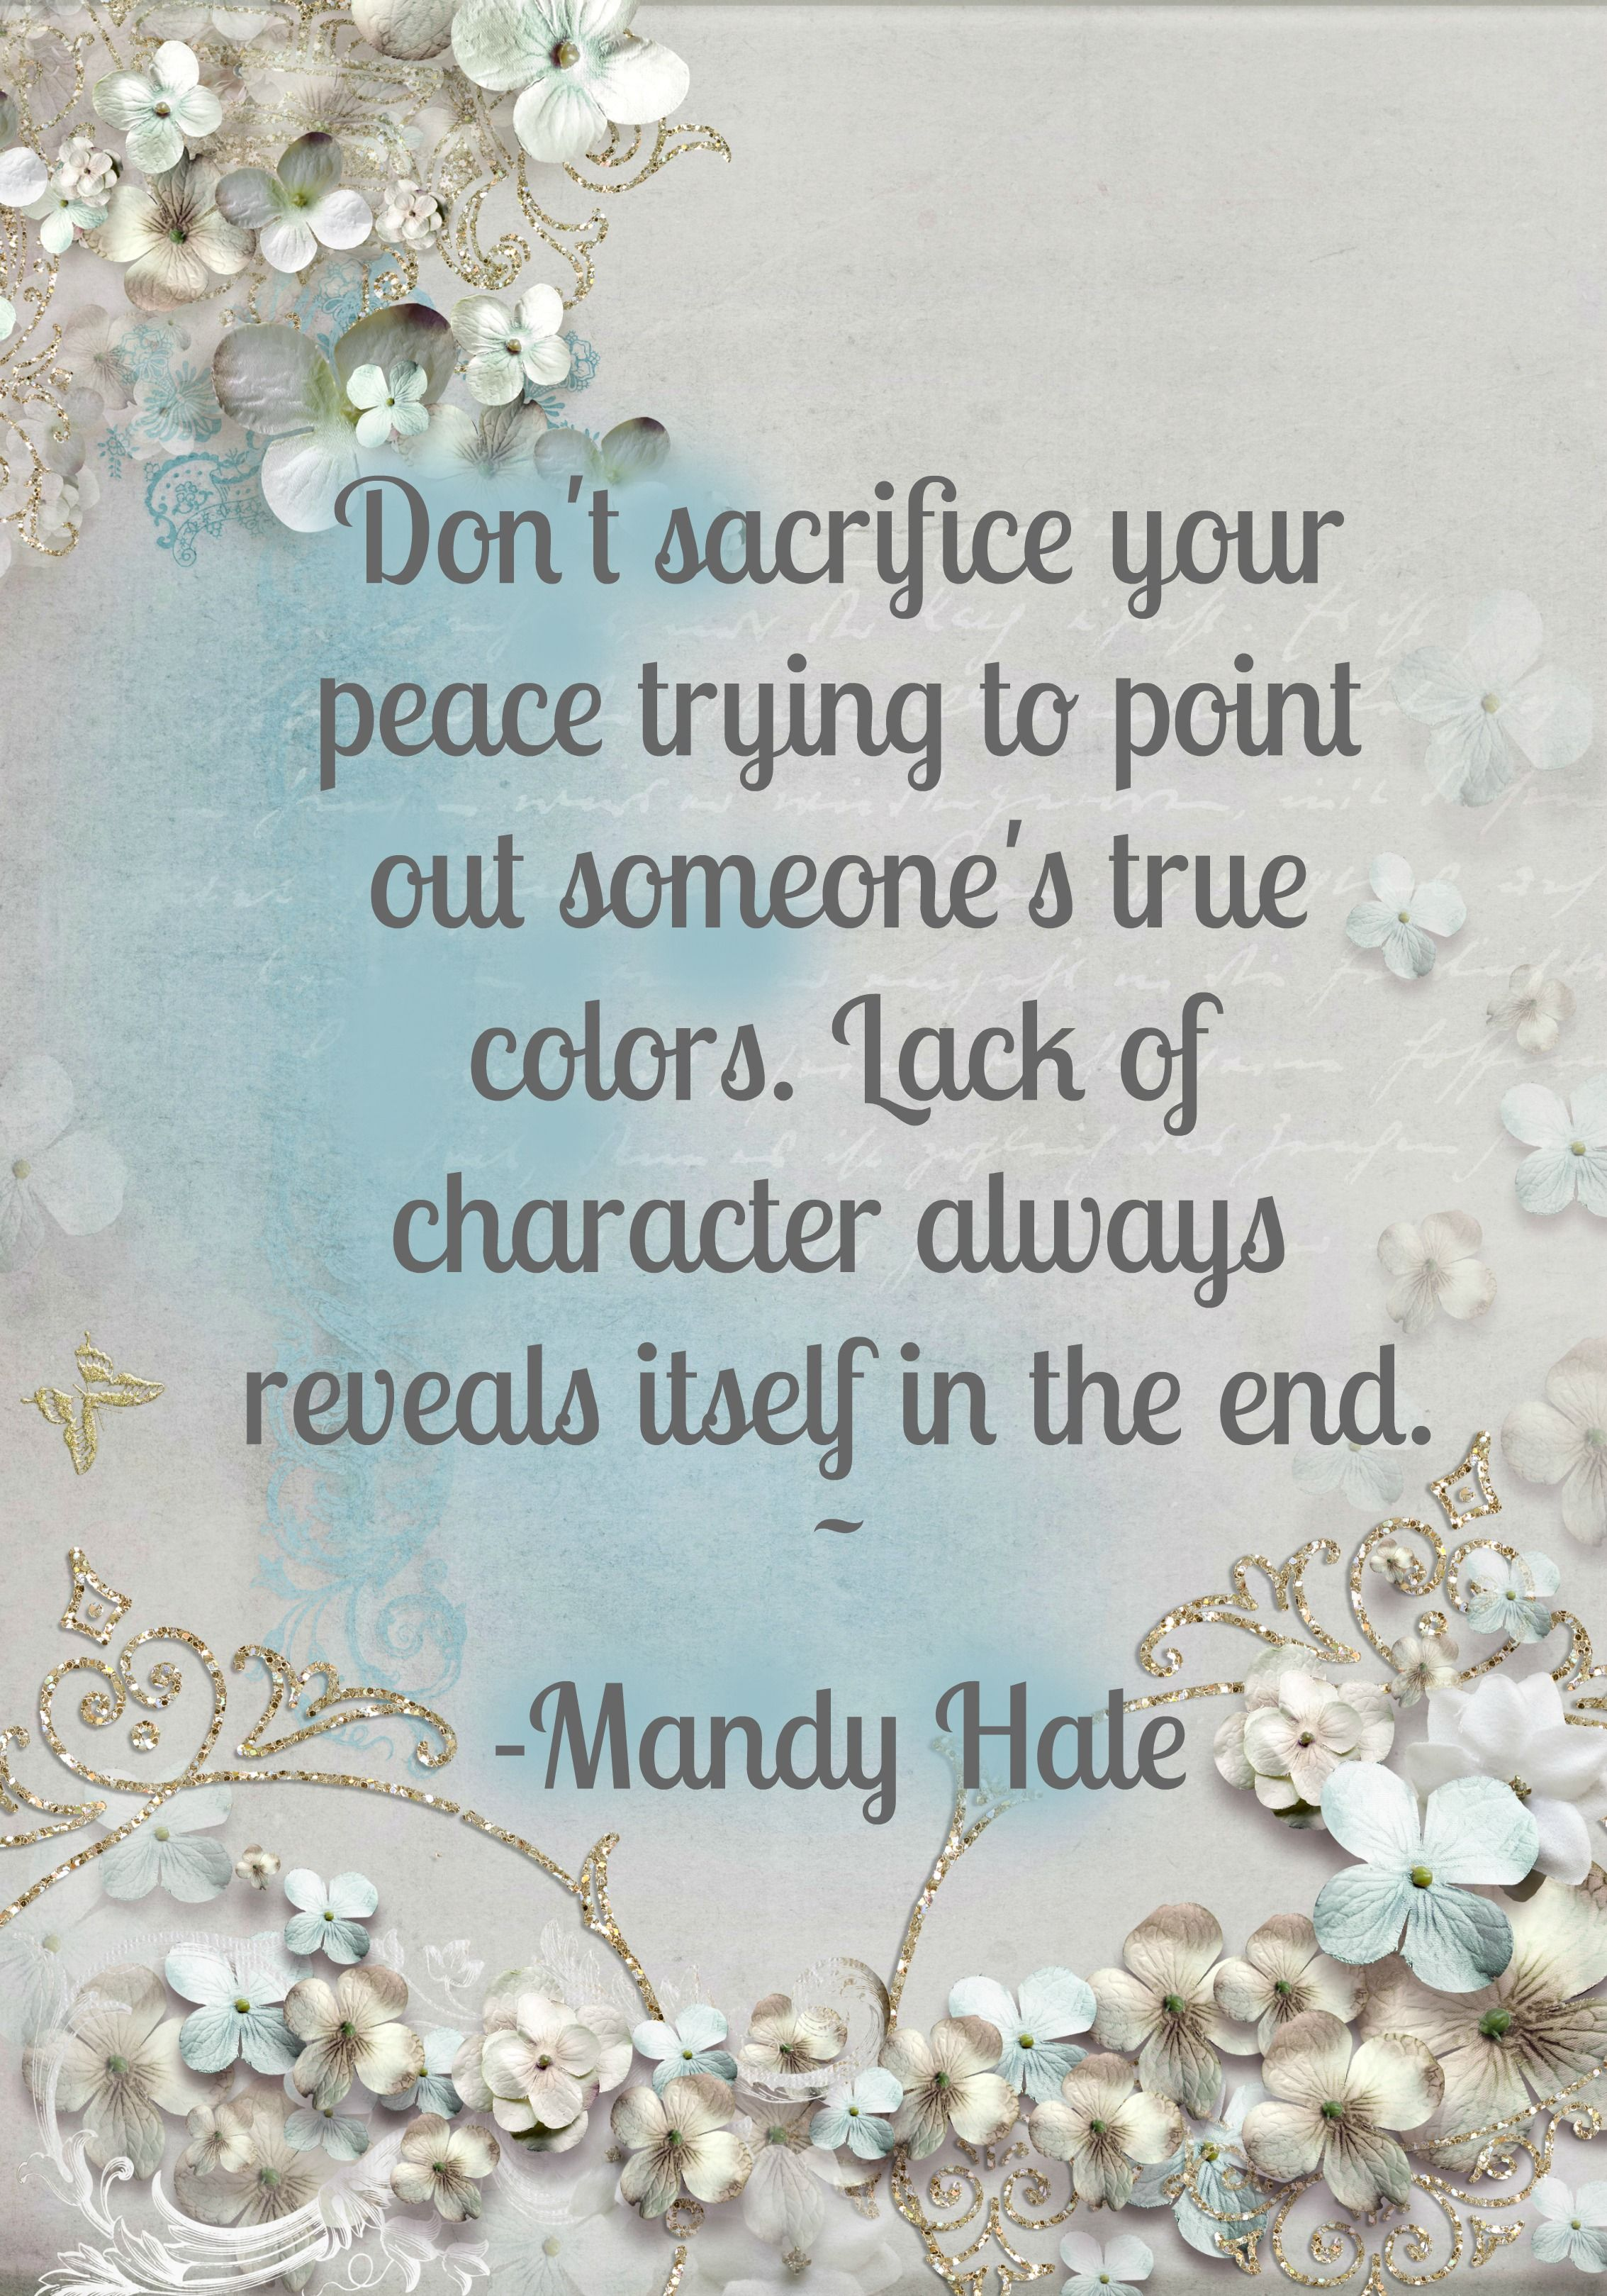 Don t sacrifice your peace trying to point out someone s true colors Lack of